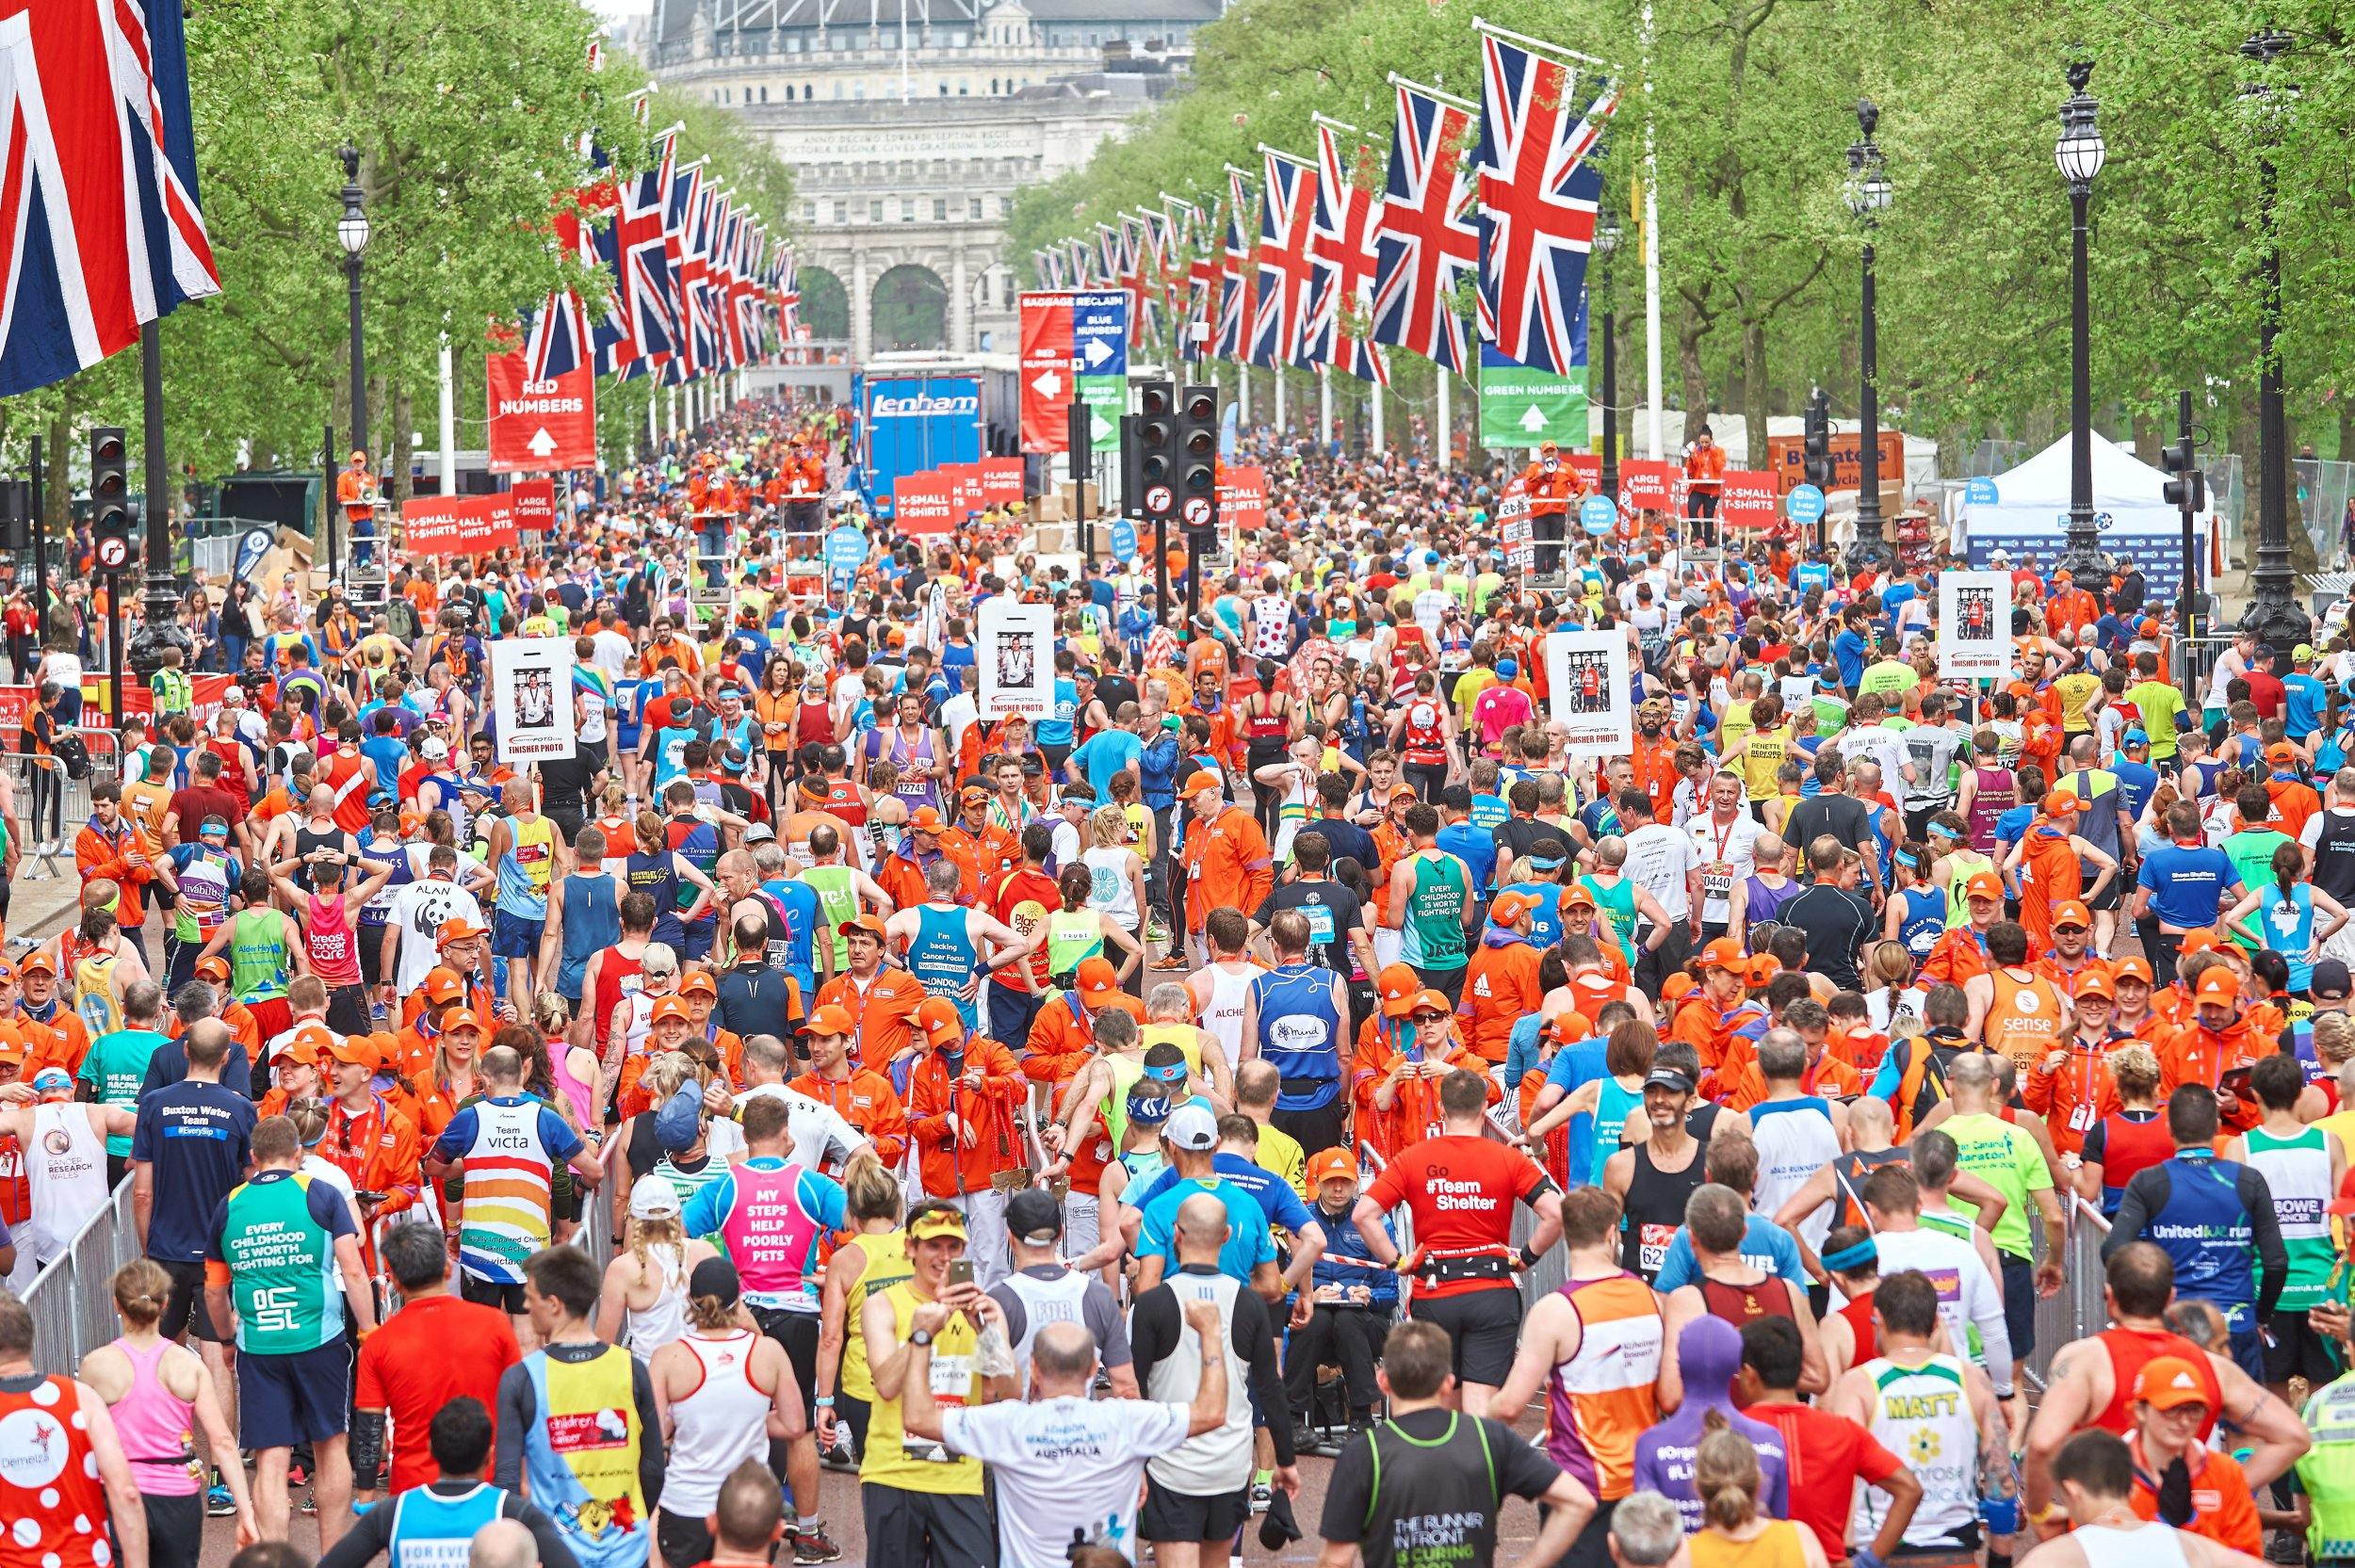 Think running the marathon's hard? Spare a thought for the poor supporters